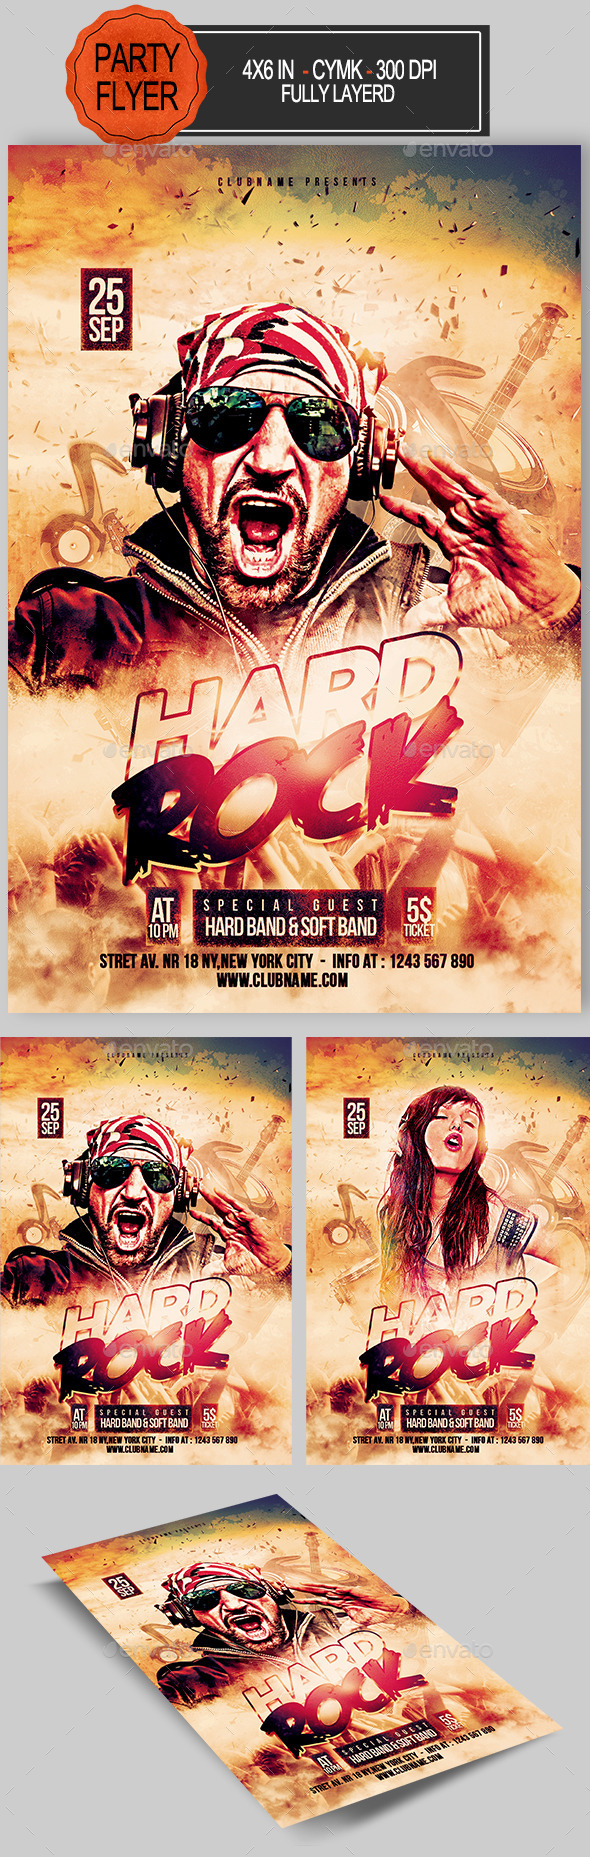 Hard Rock Flyer - Concerts Events